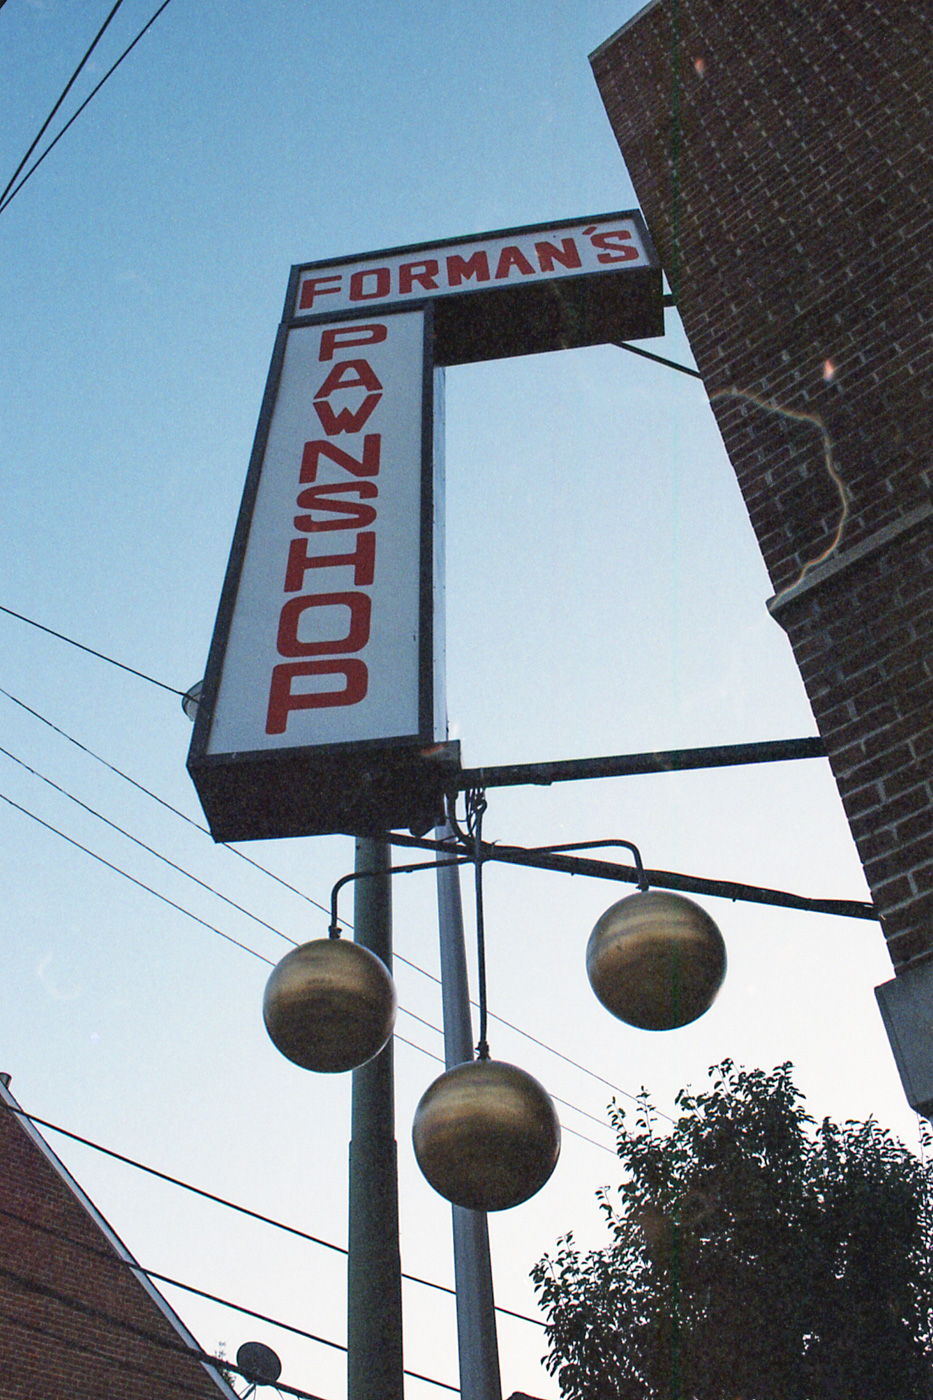 Forman's Pawnshop